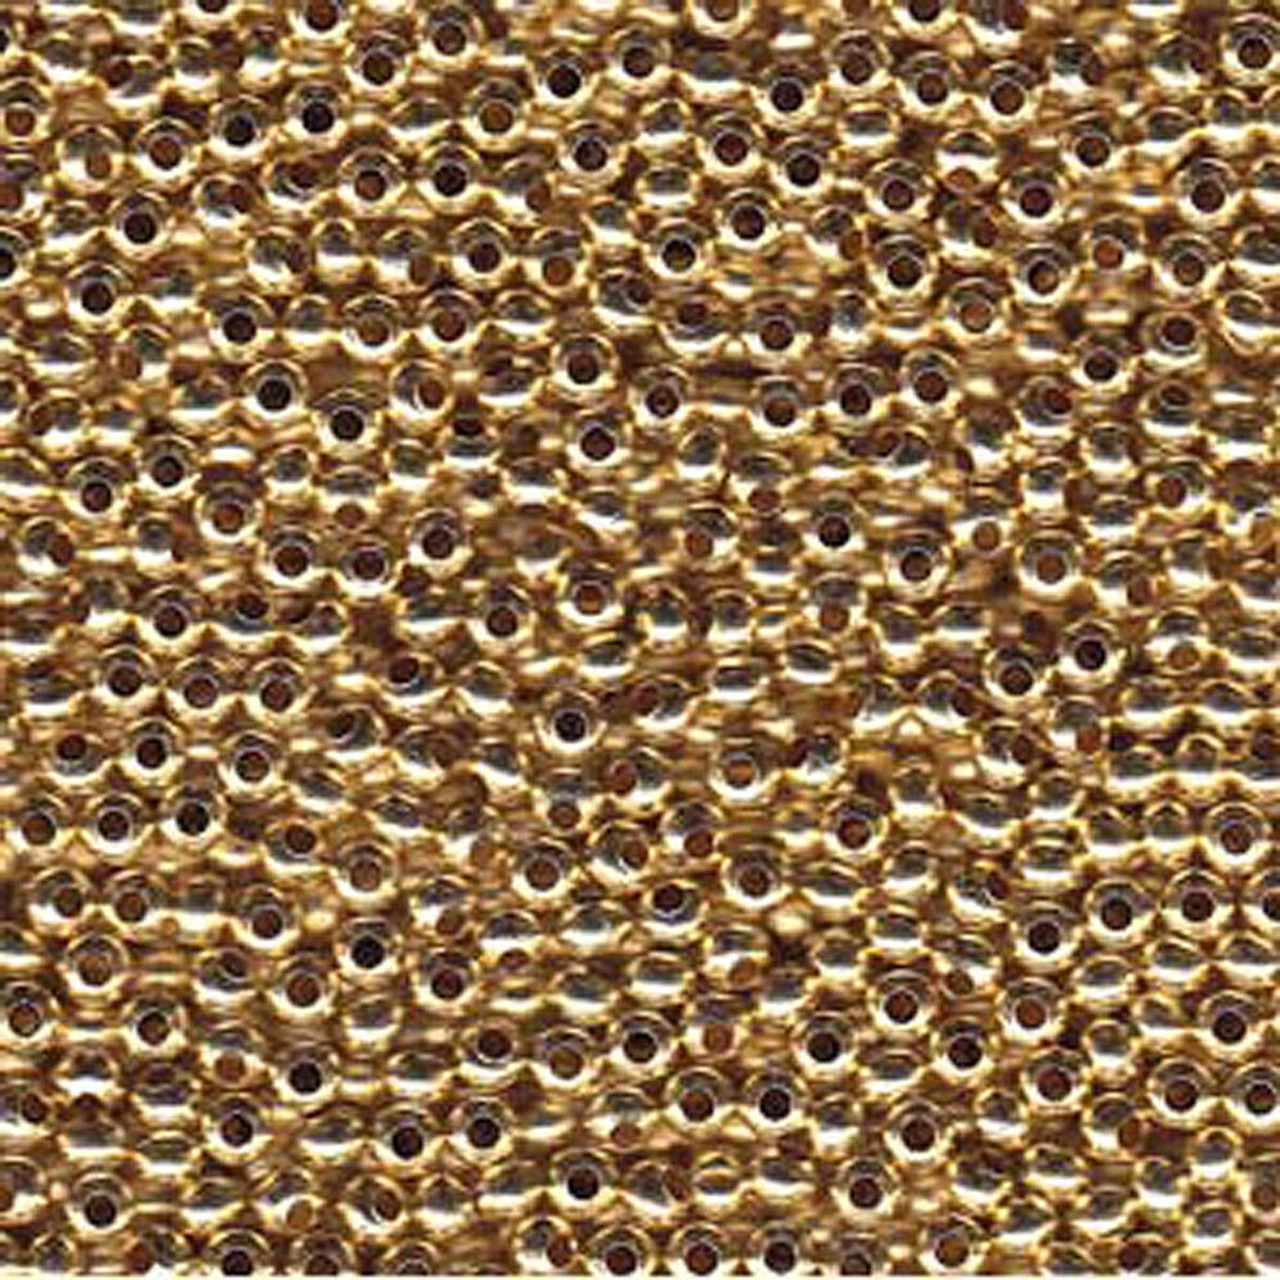 Made in USA 28Grams 6//0 Brass Metal Round Seed Beads